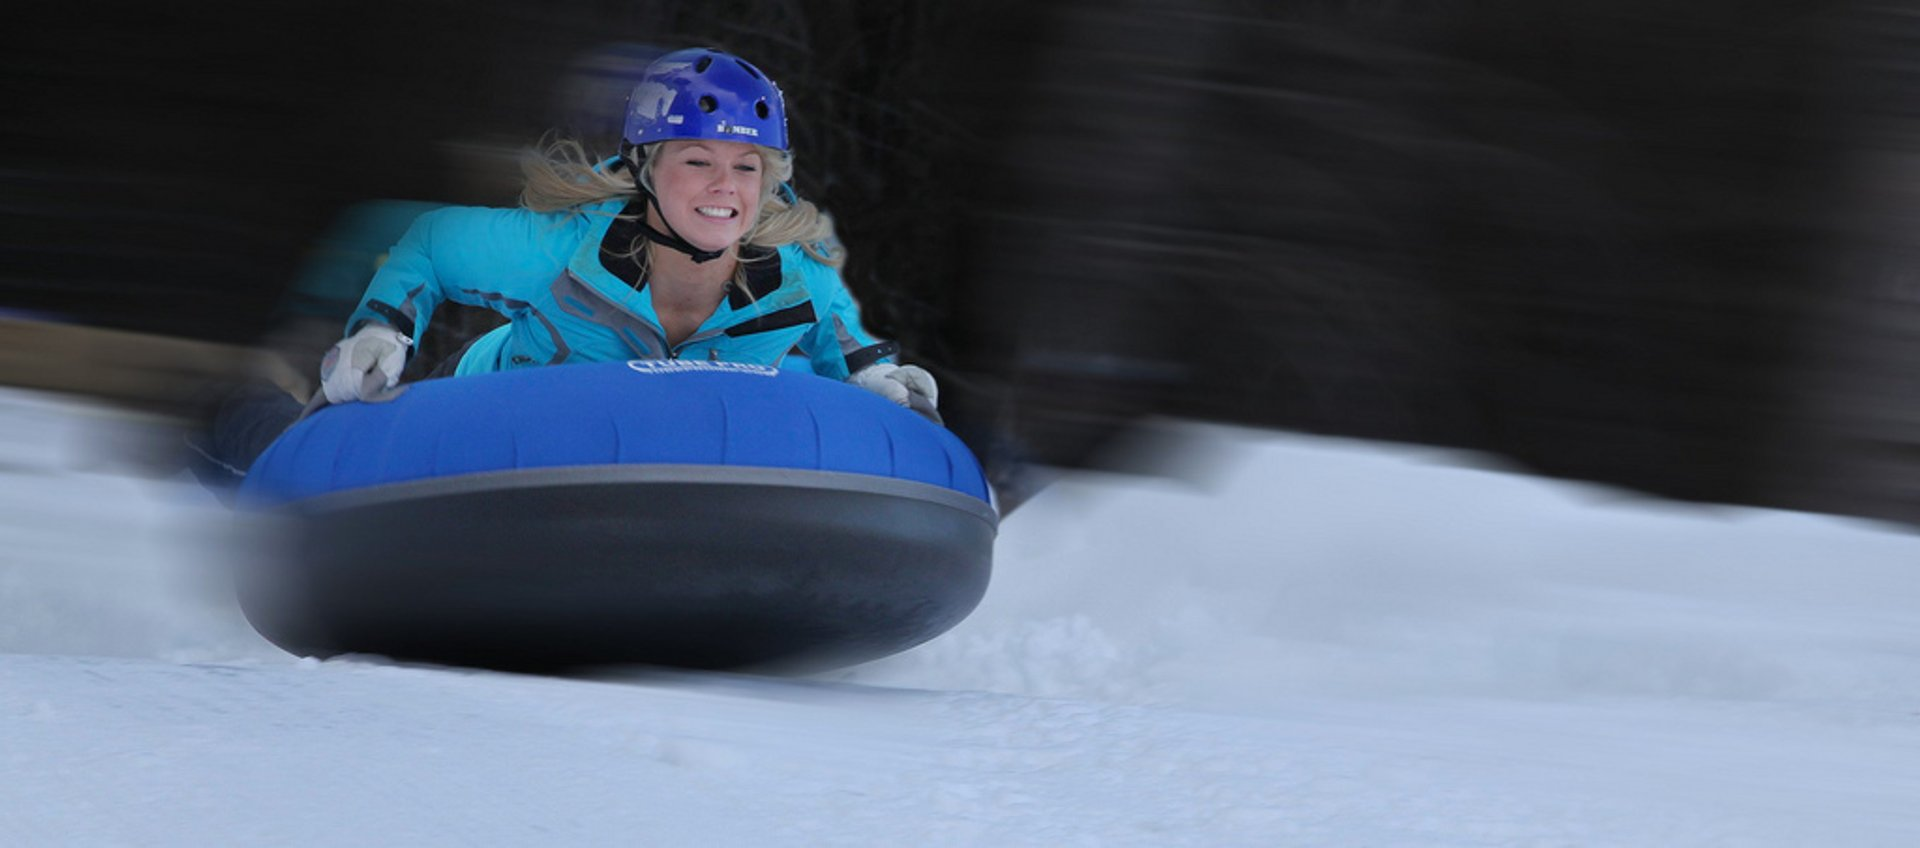 Snow Tubing in New Zealand - Best Season 2019